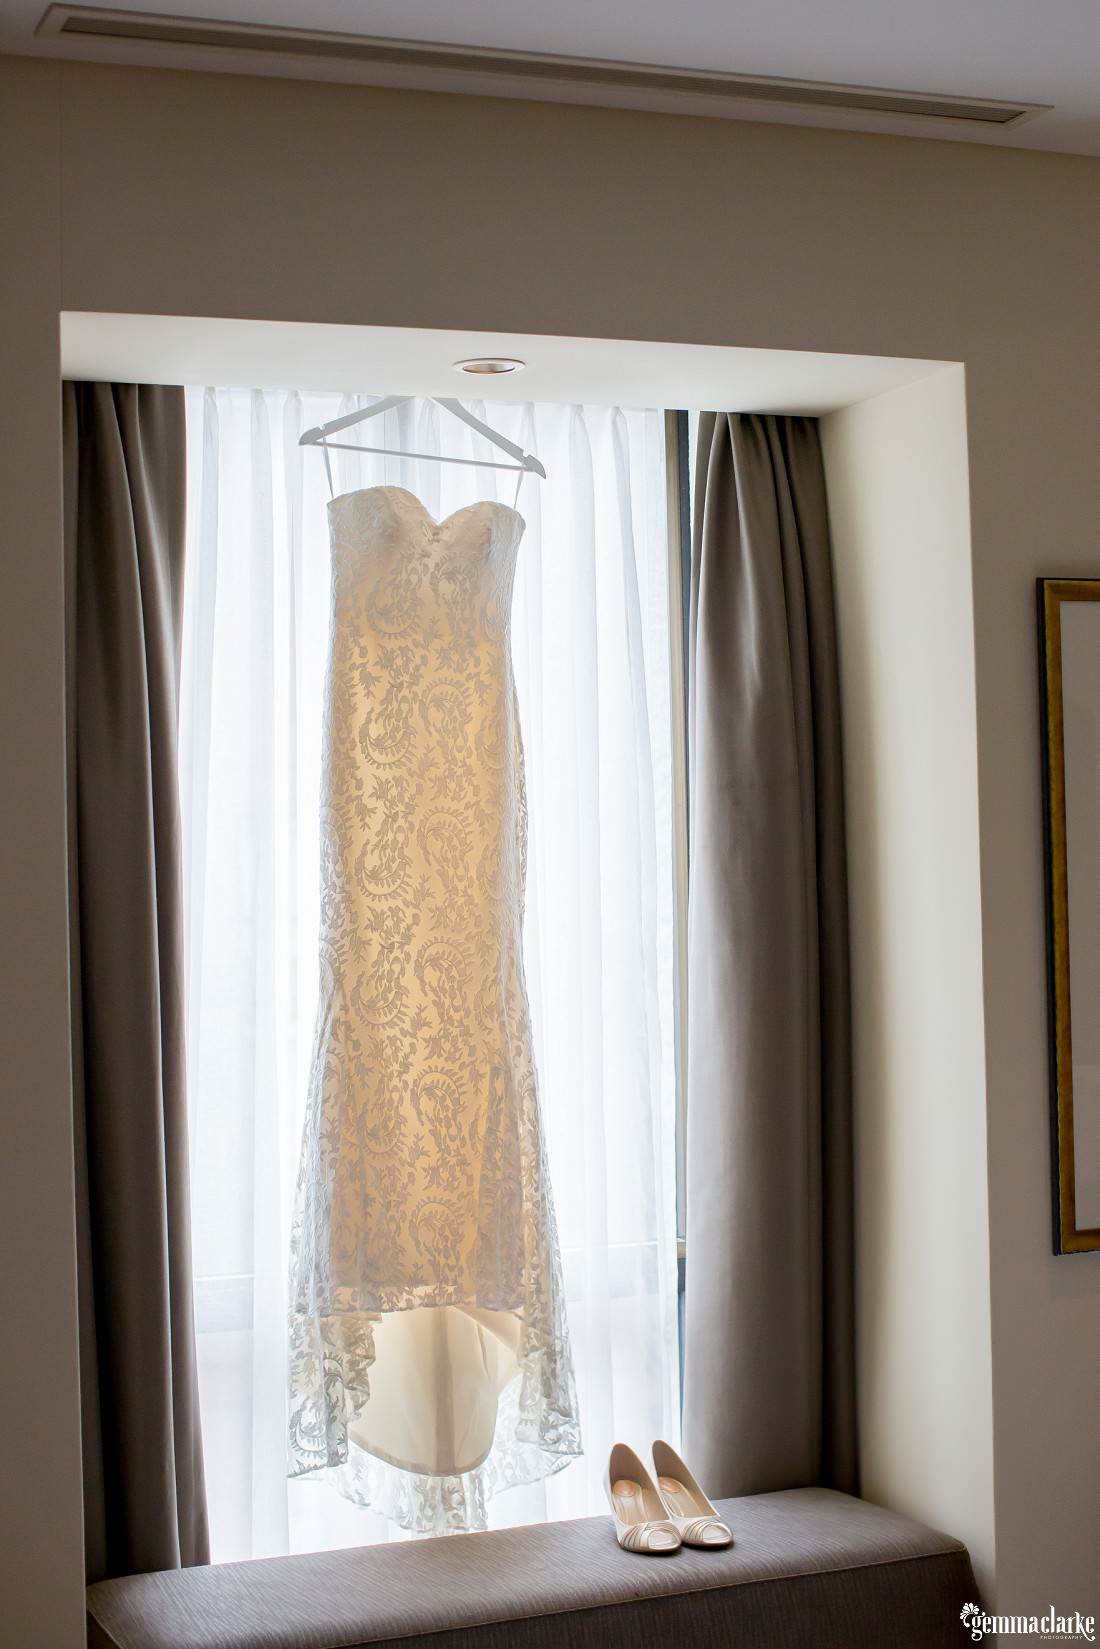 A lovely detailed white bridal gown on a hanger in a window with bridal shoes below